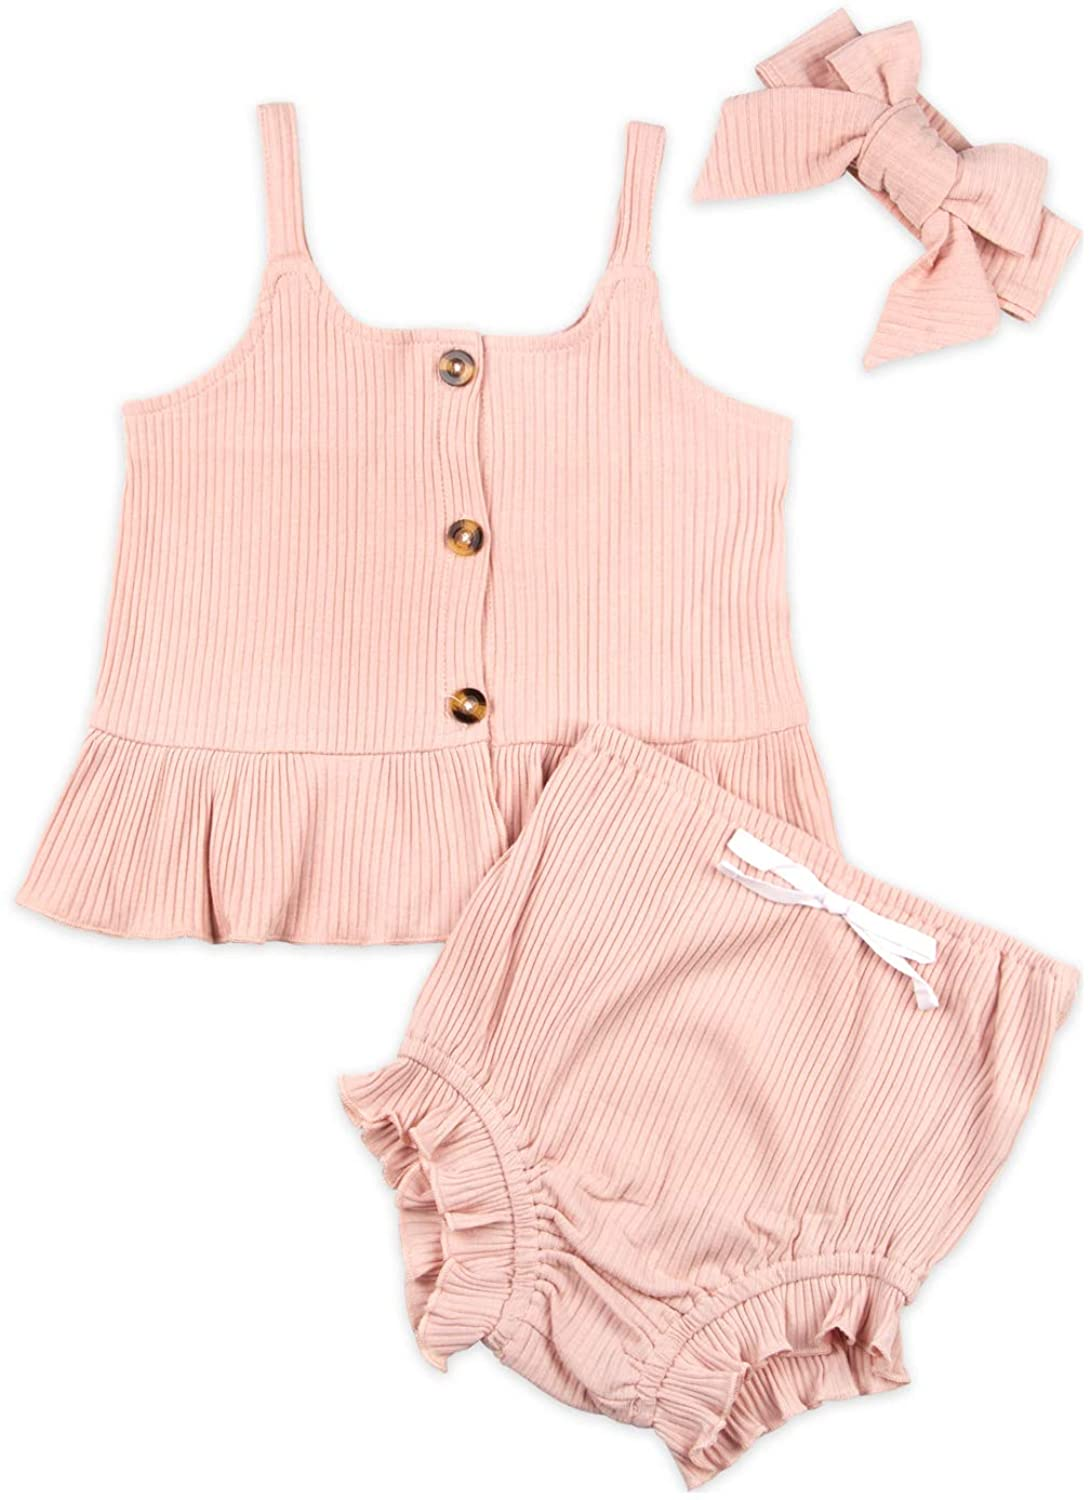 Baby Toddler Girl Summer Clothes 3 Pcs Ruffle Sleeveless Shirt Tops Knitted Pants Short Outfit Set with Headband